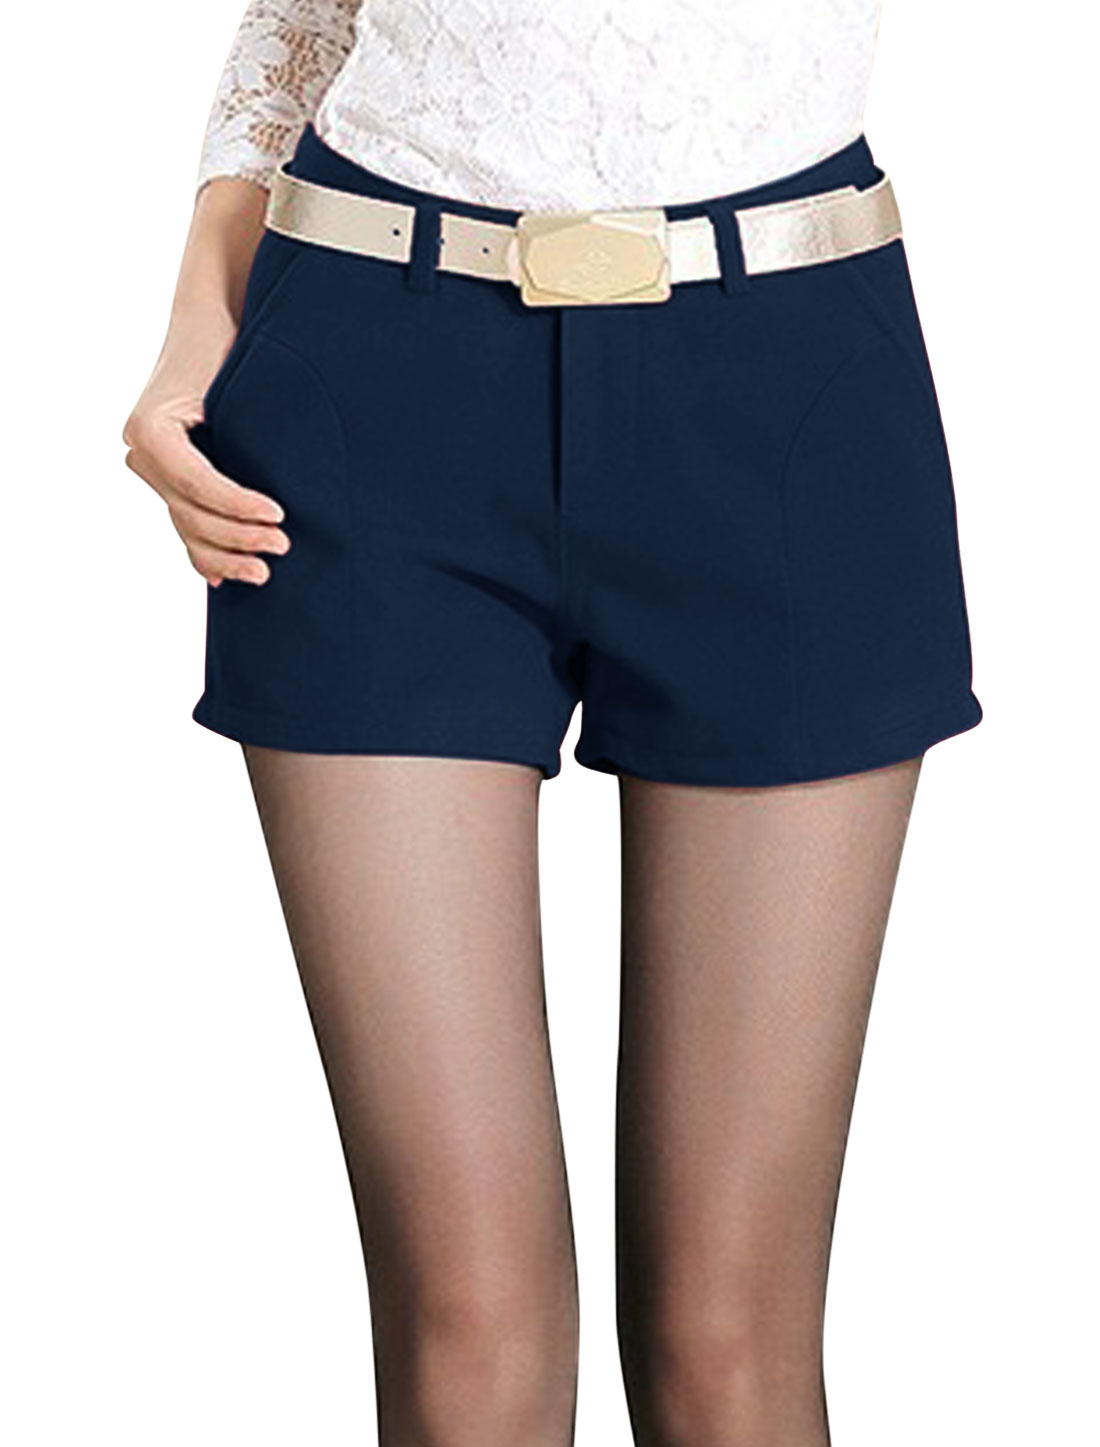 Women Button Closure Zip Fly Leisure Shorts Navy Blue M